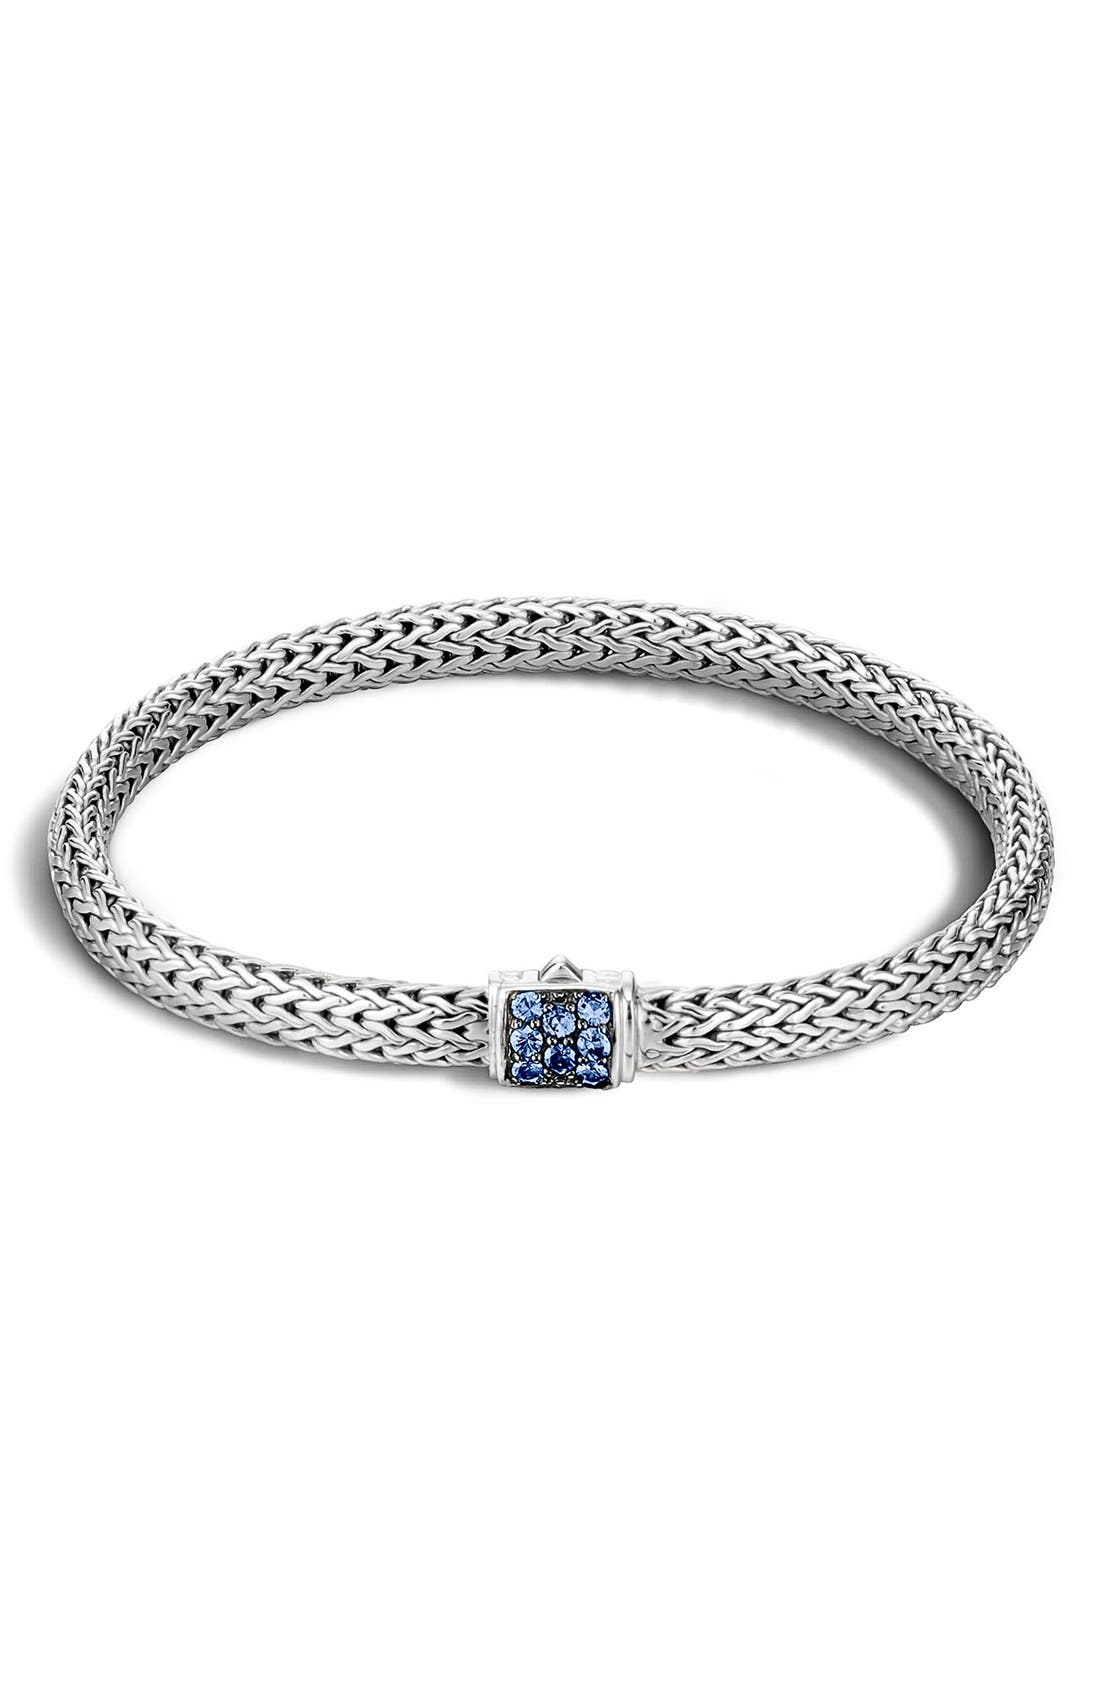 Classic Chain 5mm Bracelet,                         Main,                         color, SILVER/ BLUE SAPPHIRE